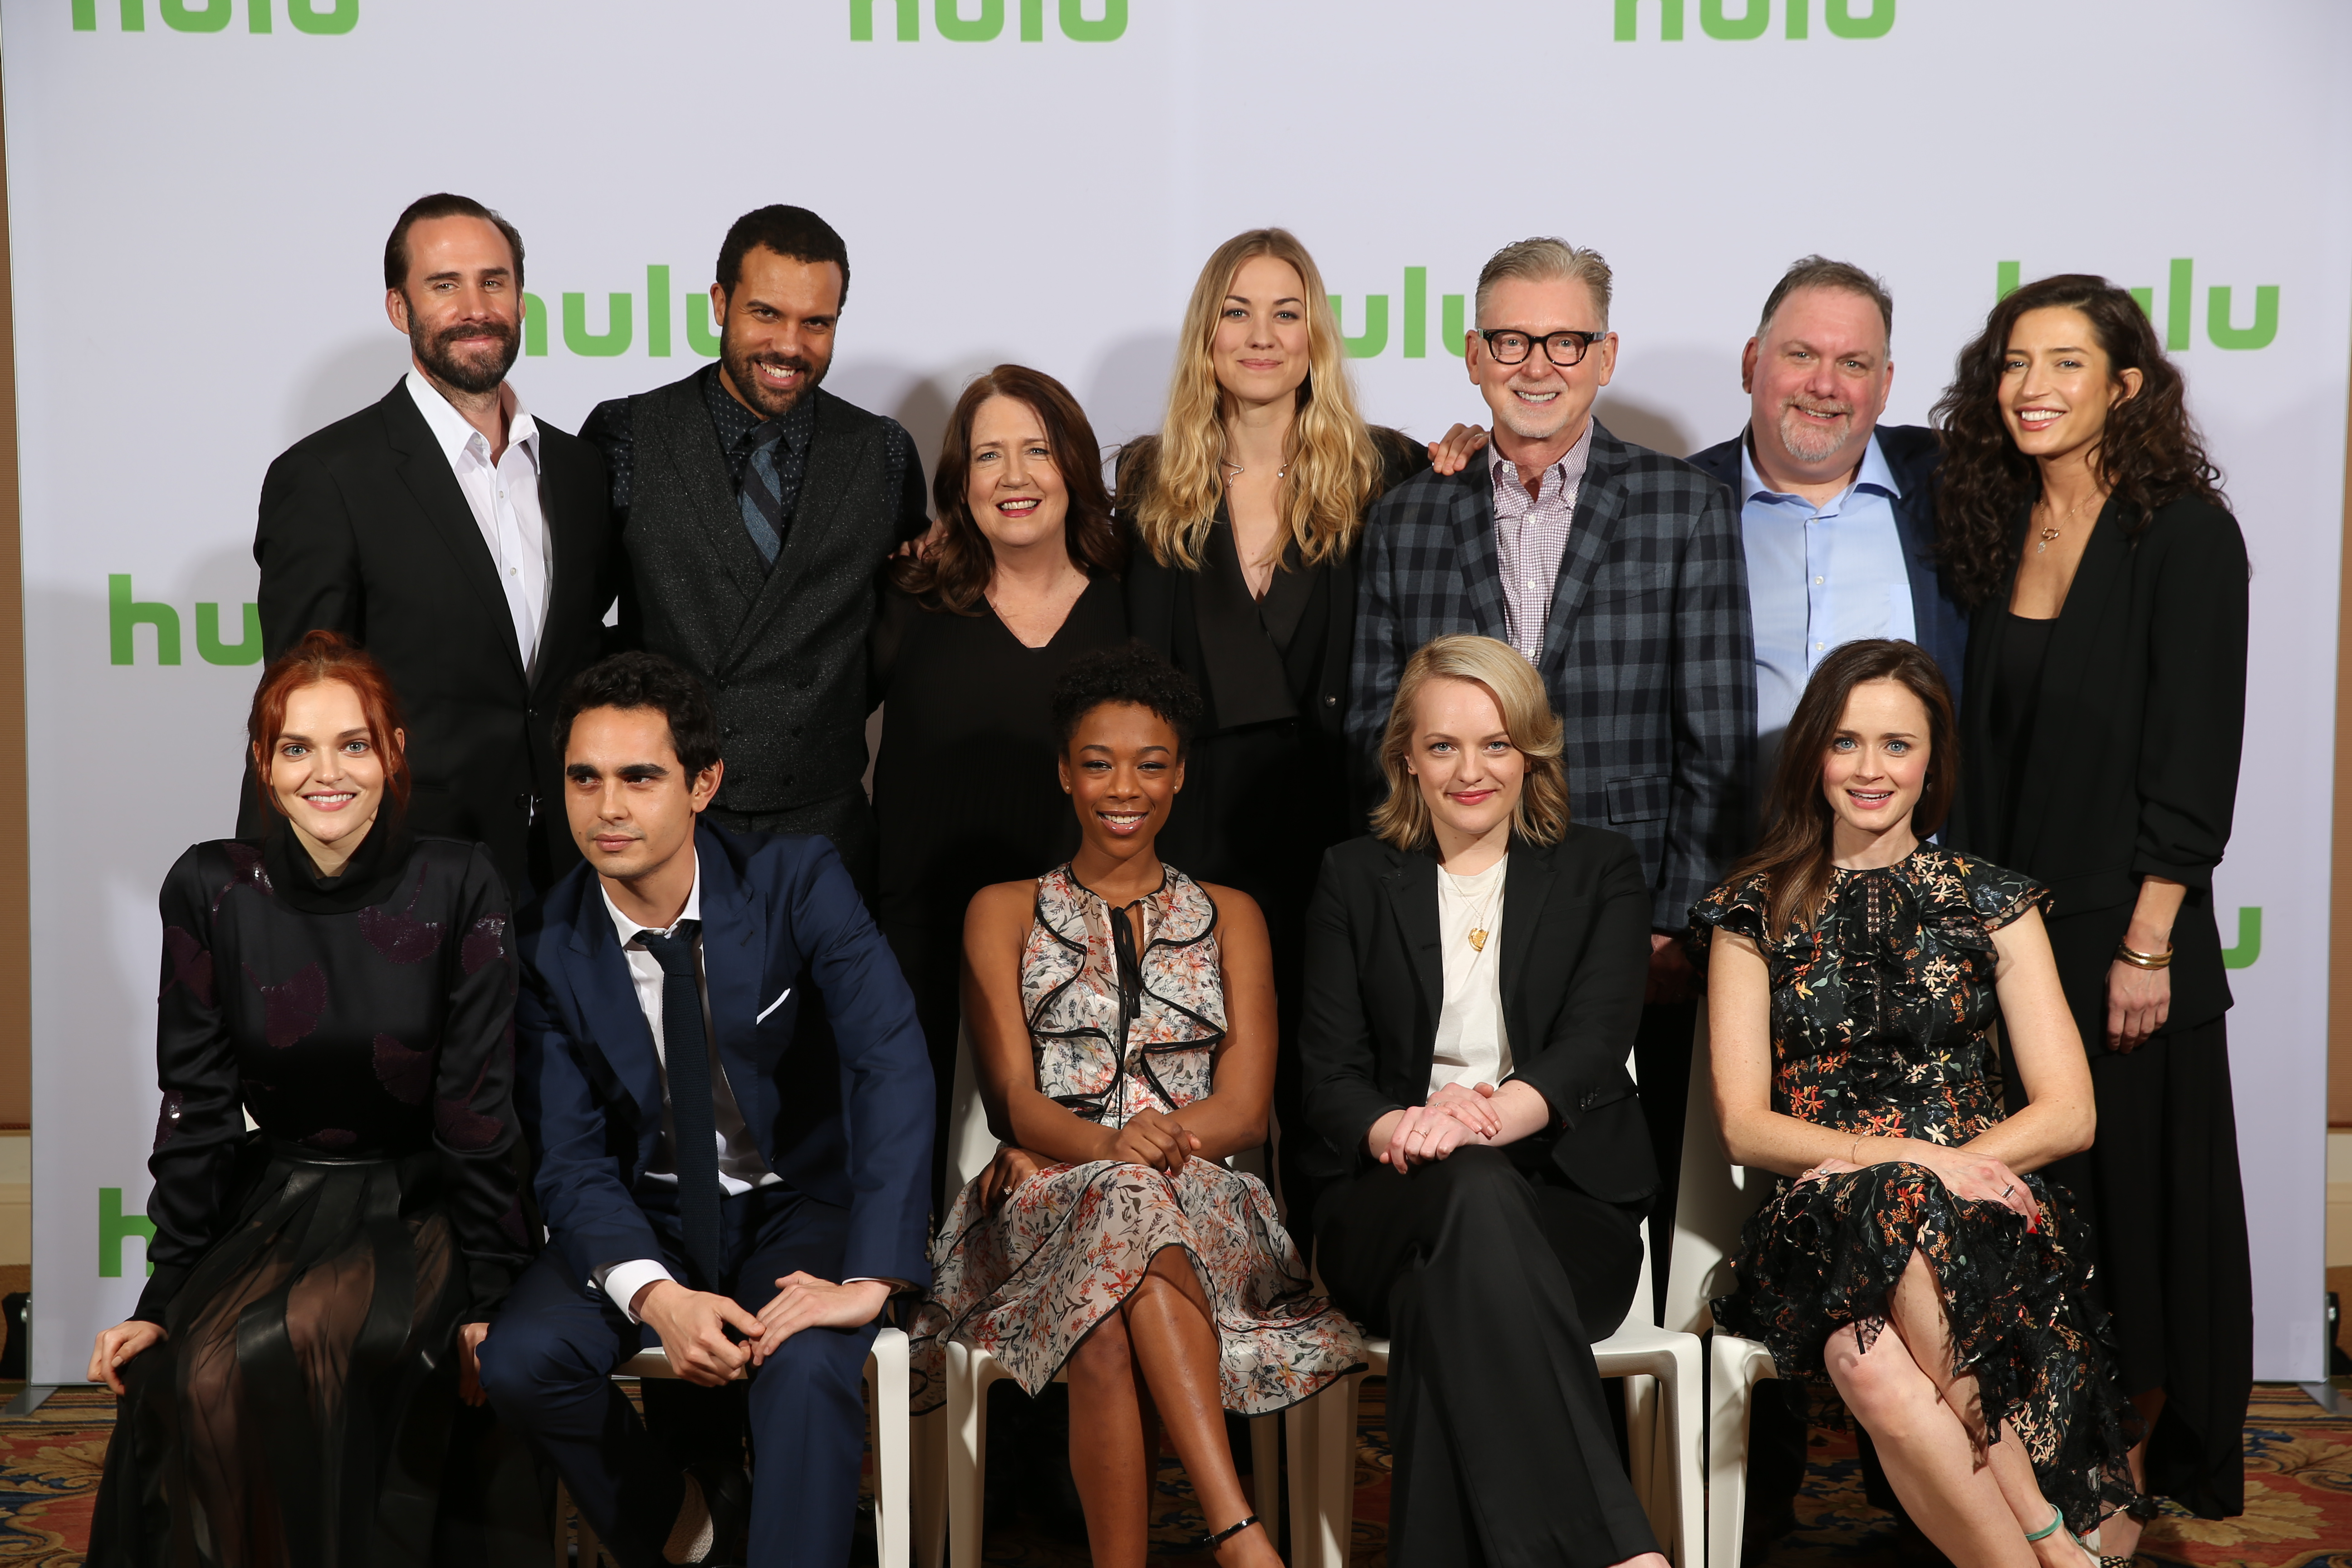 From left, Madeline Brewer, Joseph Fiennes, Max Minghella, O-T Fagbenle, Ann Dowd, Samira Wiley, Yvonne Strahovski, Elisabeth Moss, Warren Littlefield, Executive Producer, Bruce Miller, Executive Producer, Alexis Bledel and Reed Morano pose in the Green Room during the Hulu Winter TCA Press Tour 2017 before The Handmaid's Tale panel at The Langham Huntington Hotel on January 7, 2017 in Pasadena, Calif. (Photo by: Dan MacMedan/Hulu)